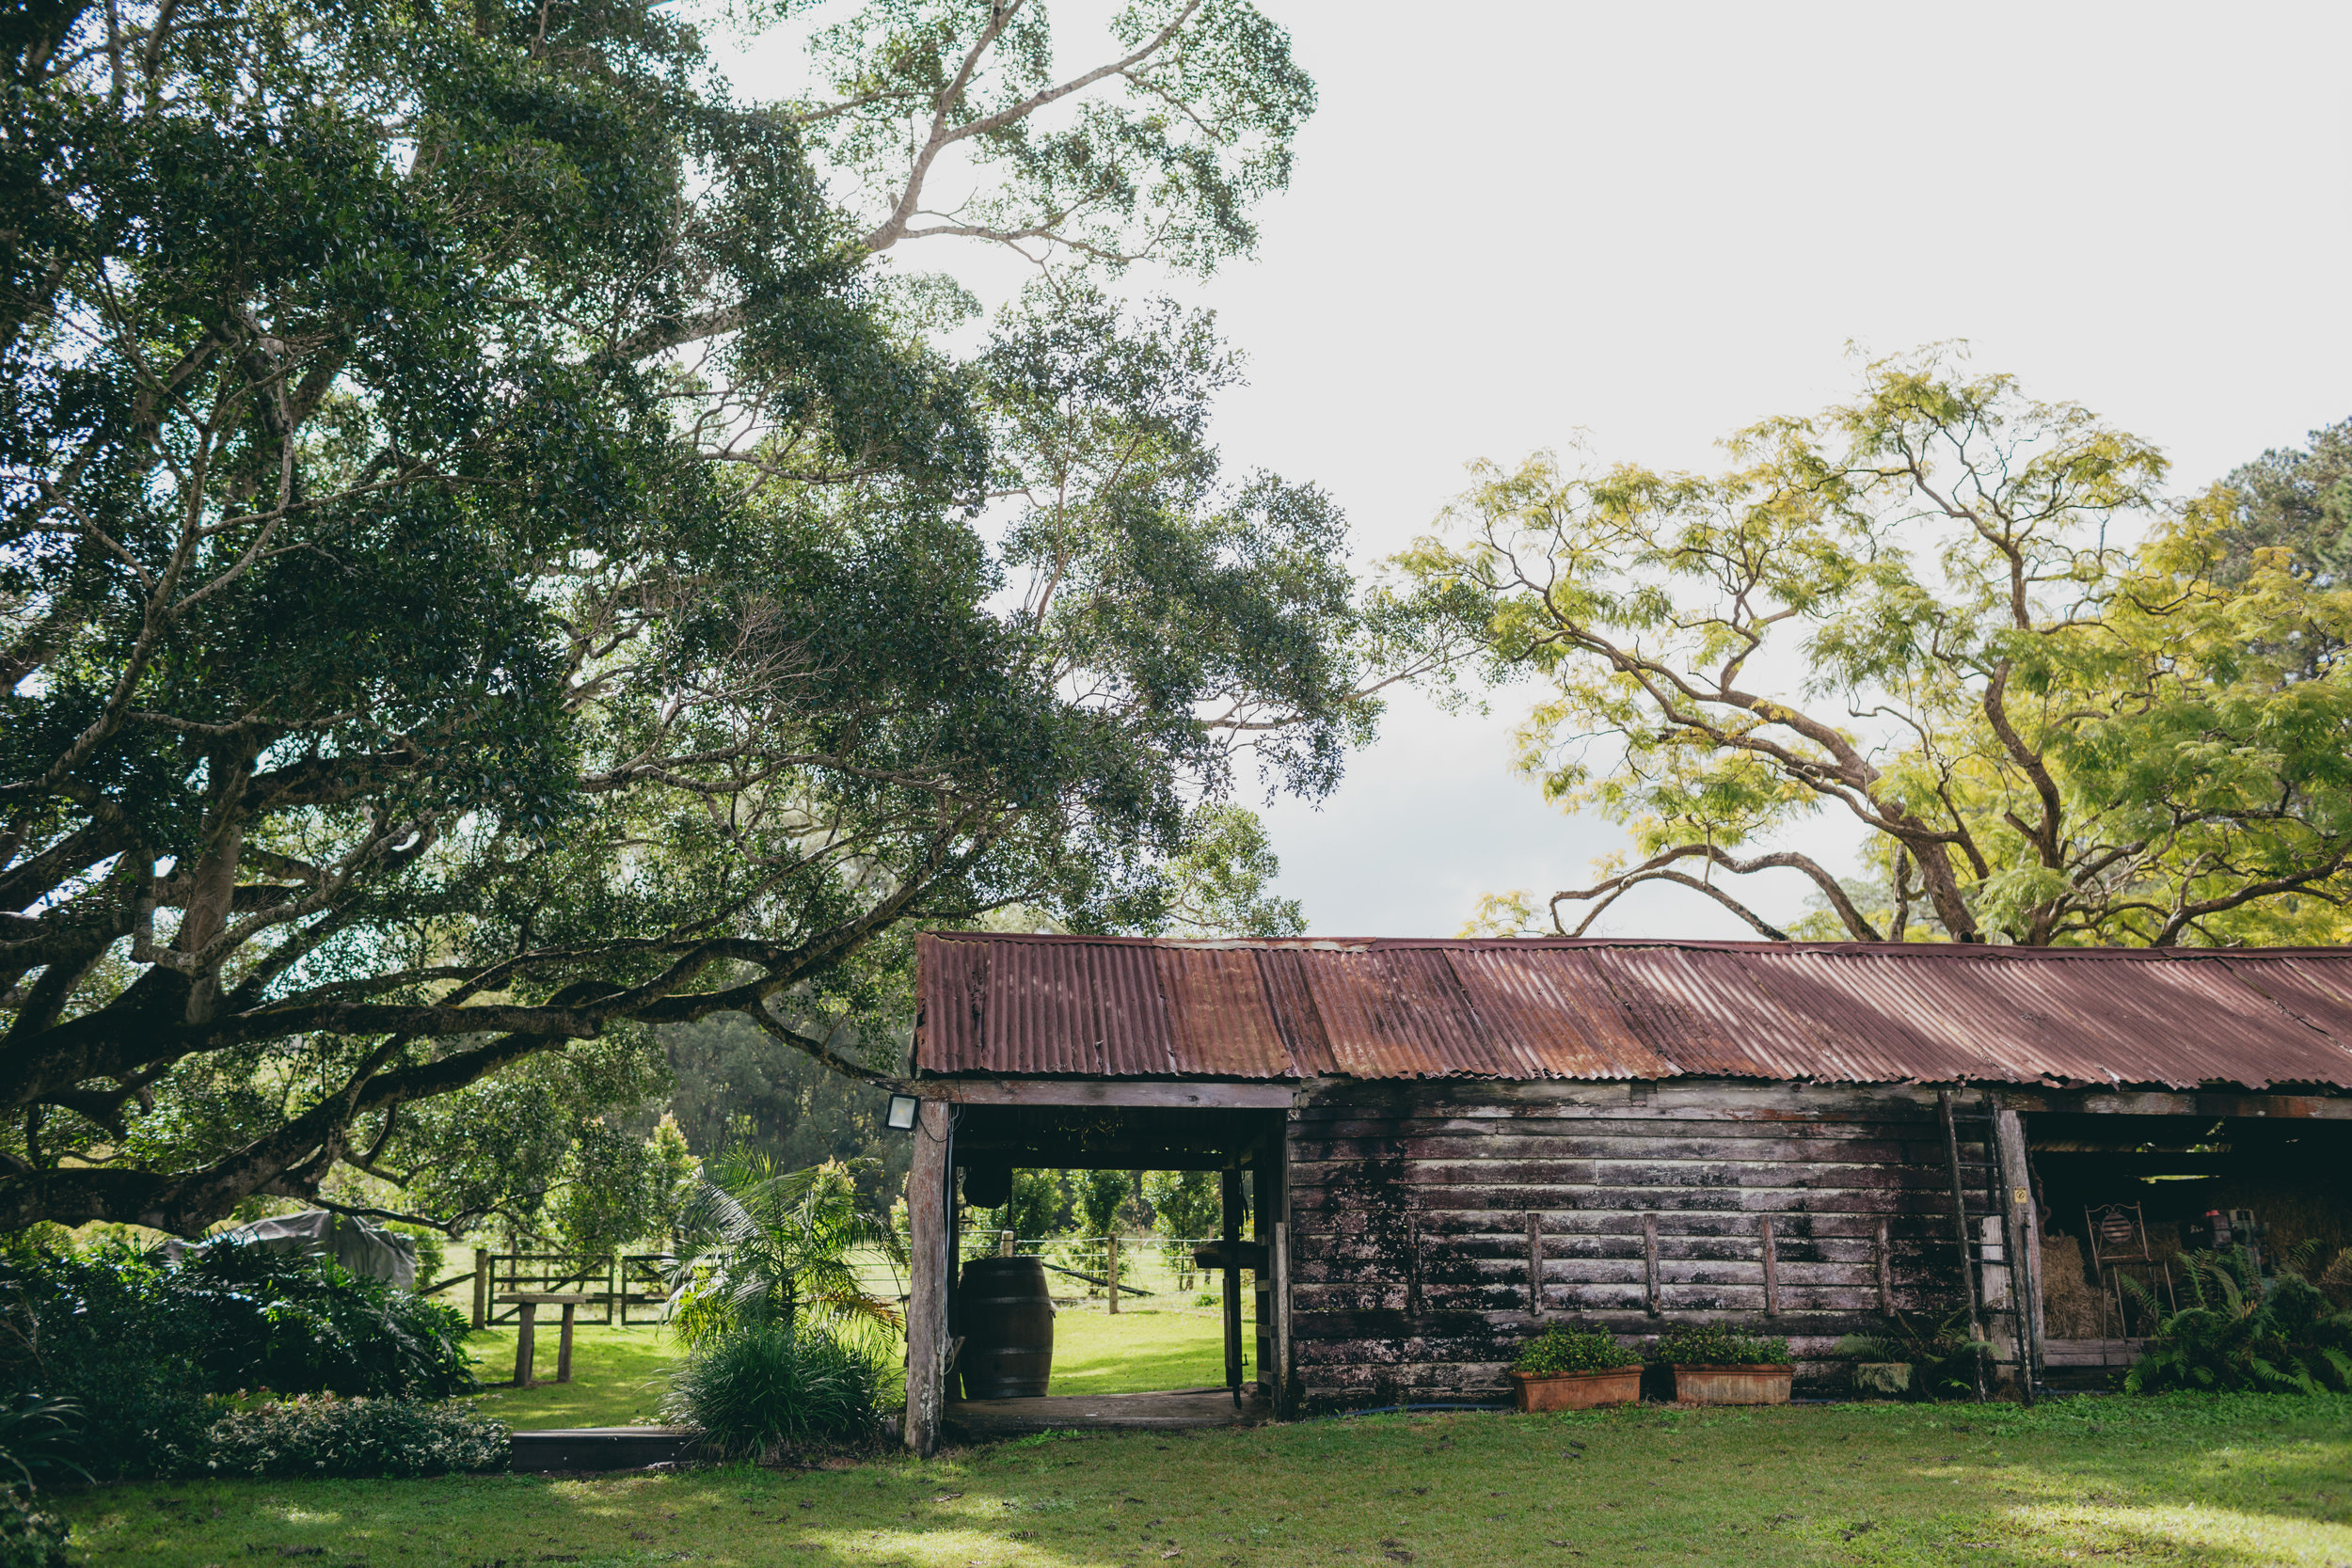 Old shed with rusting roof and weathered wood panels. surrounded by large trees creating shade.